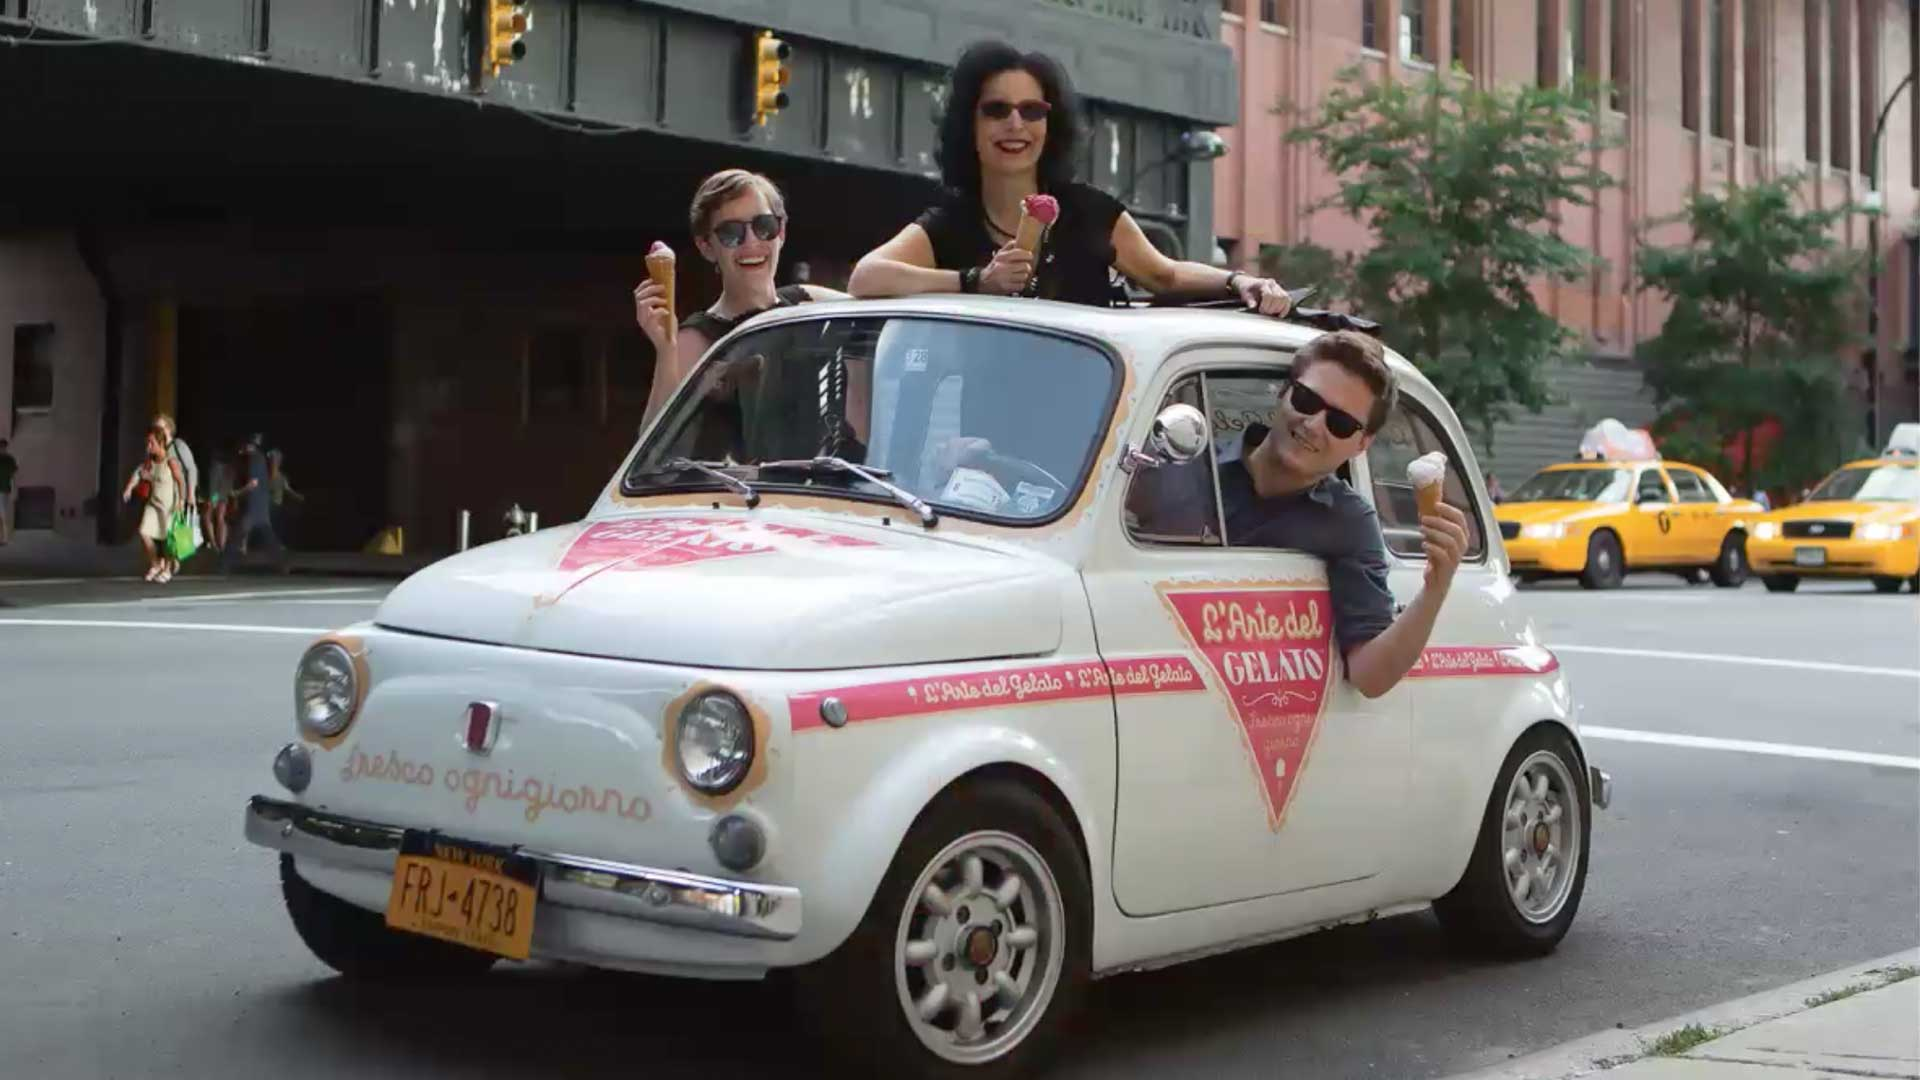 3 people in a small white car